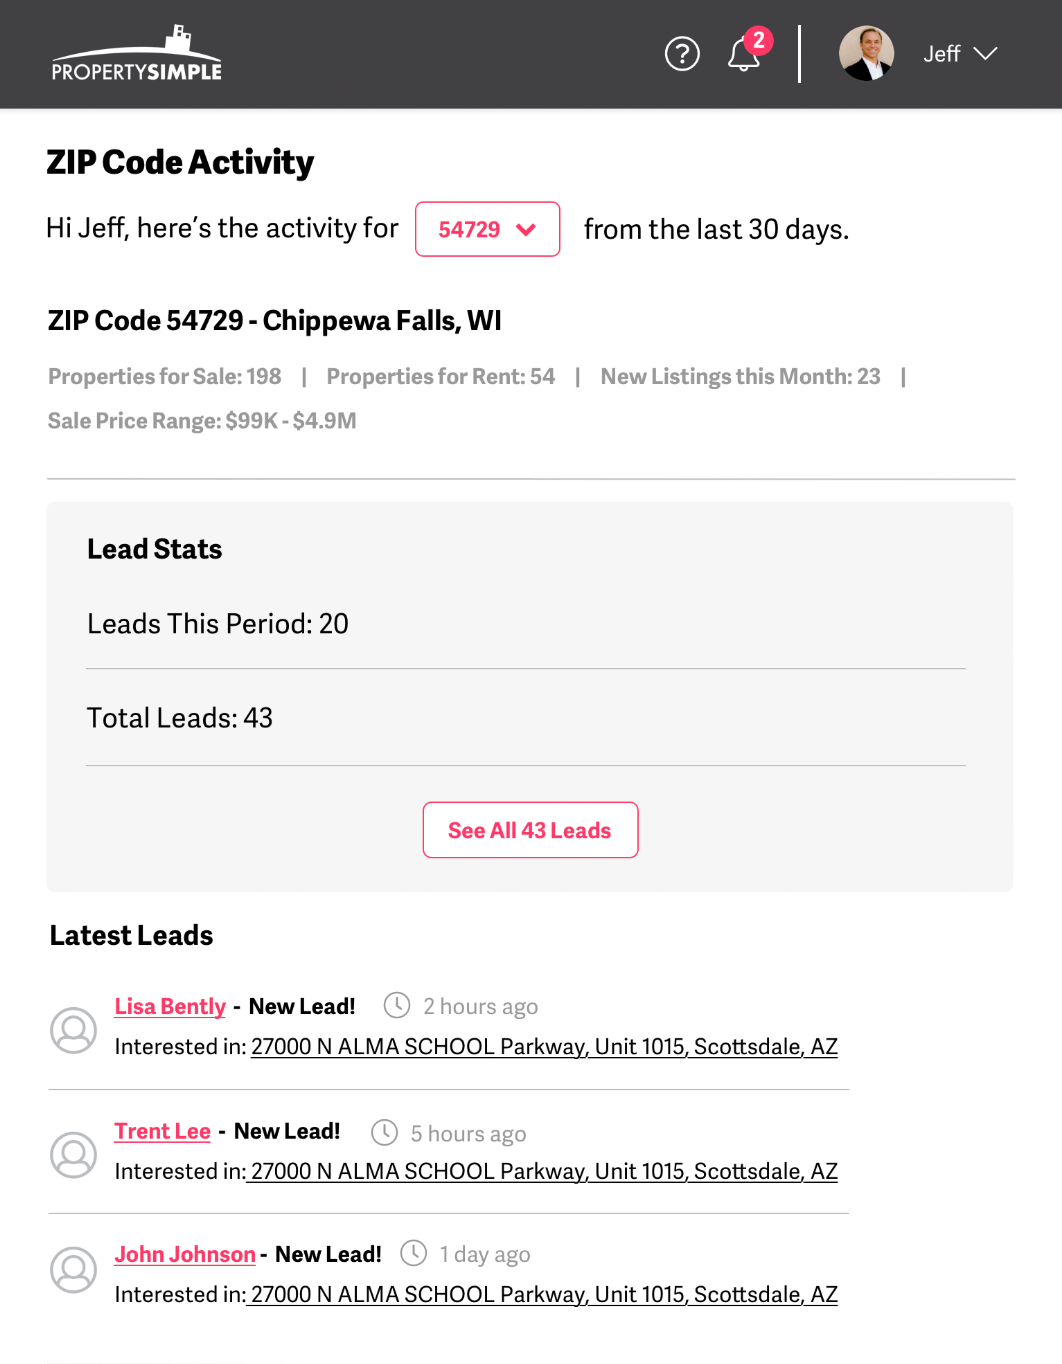 Example of how the summary of ZIP Code Statistics and leads appear in the ZIP Codes manager